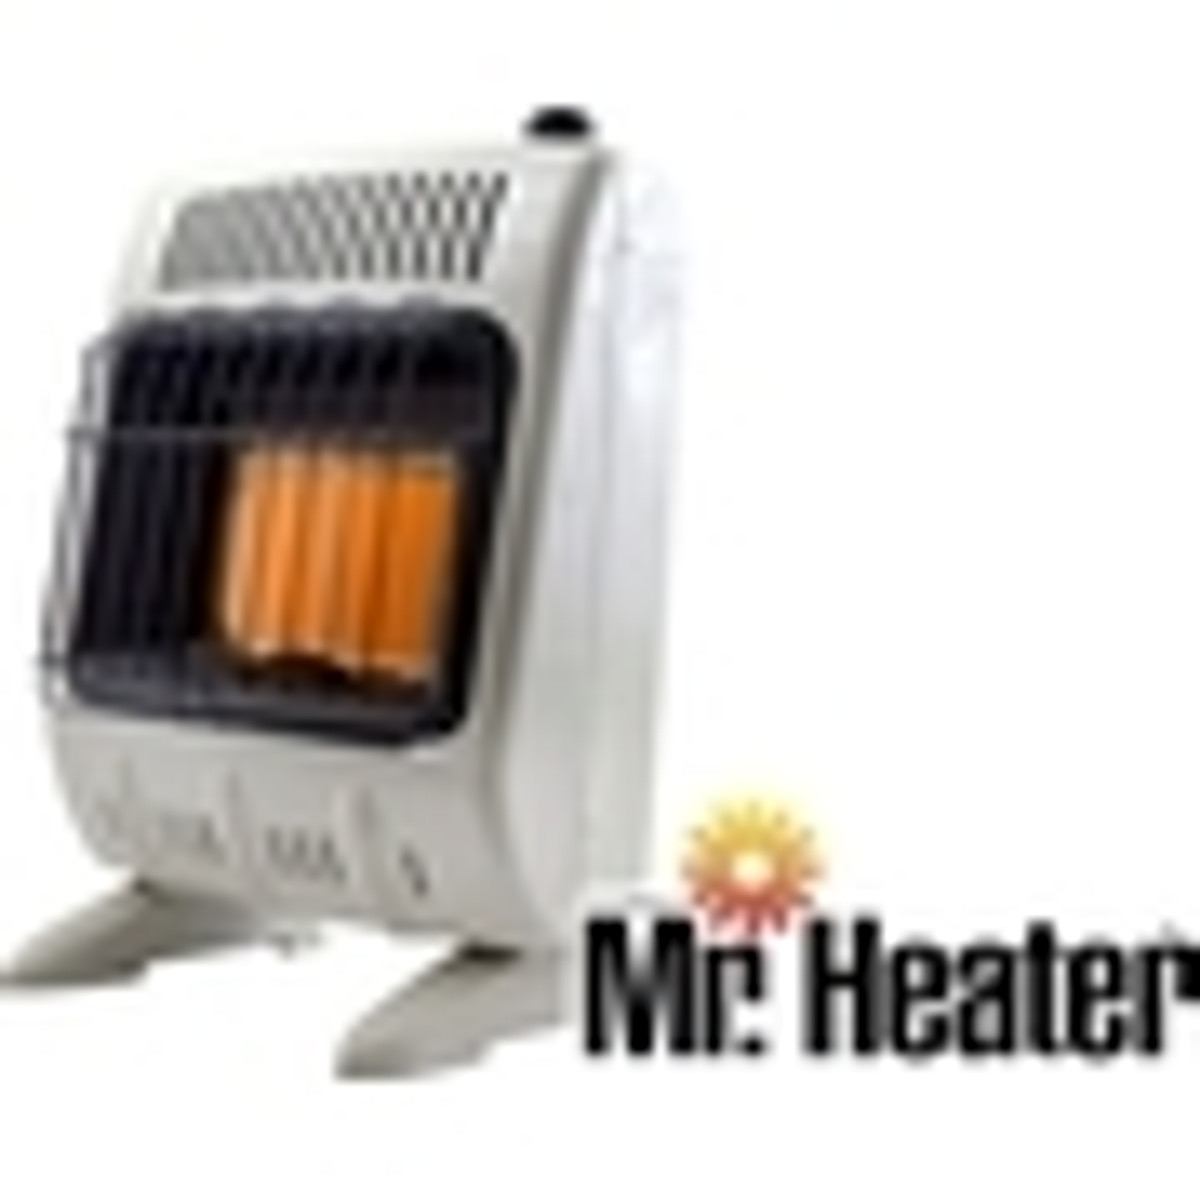 Mr. Heater Space Heaters